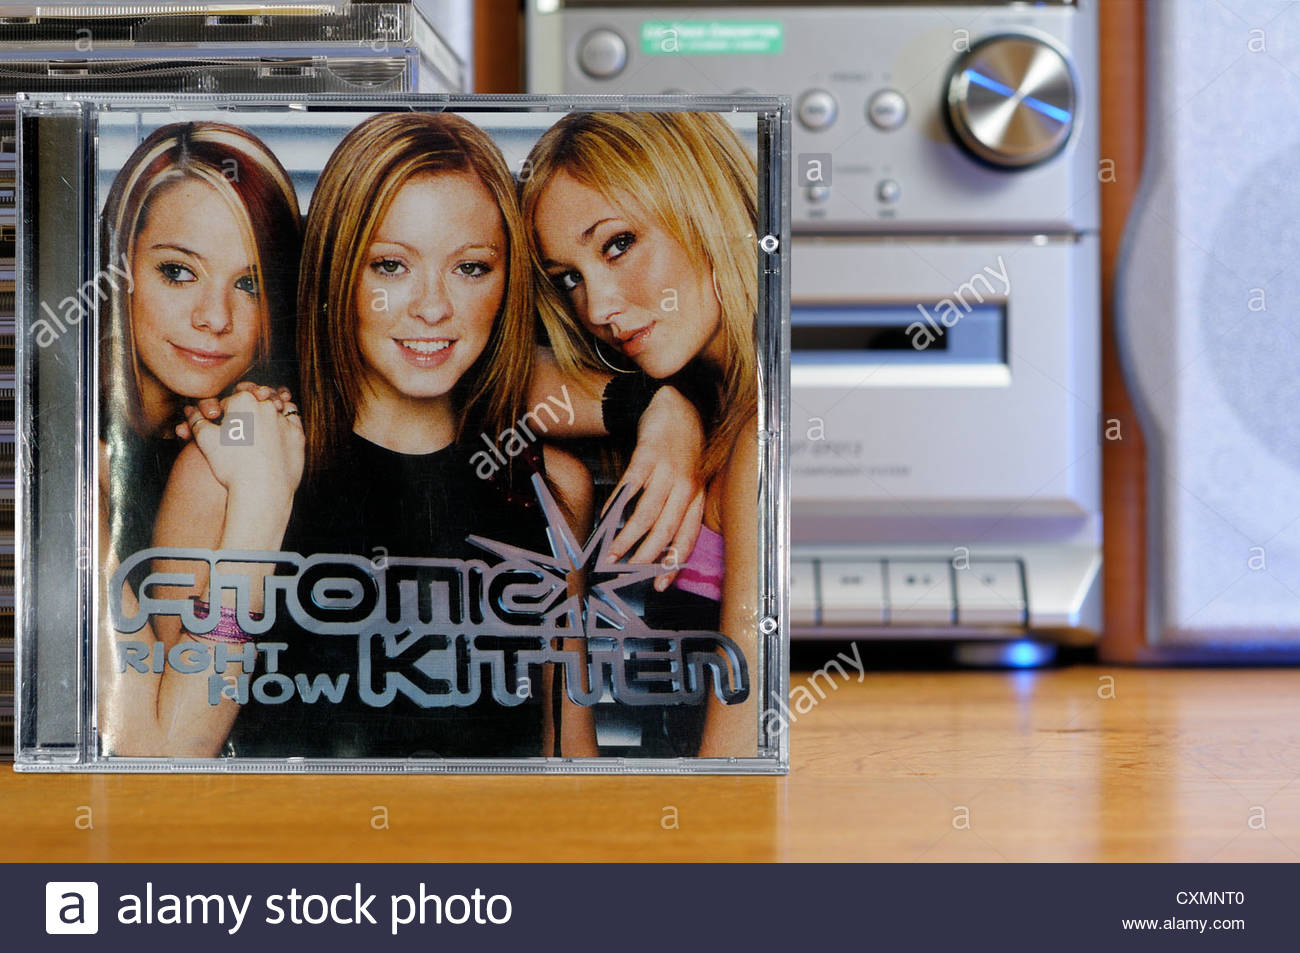 Atomic Kitten First Album Right Now Piled Music Cd Cases England Stock Photo Alamy